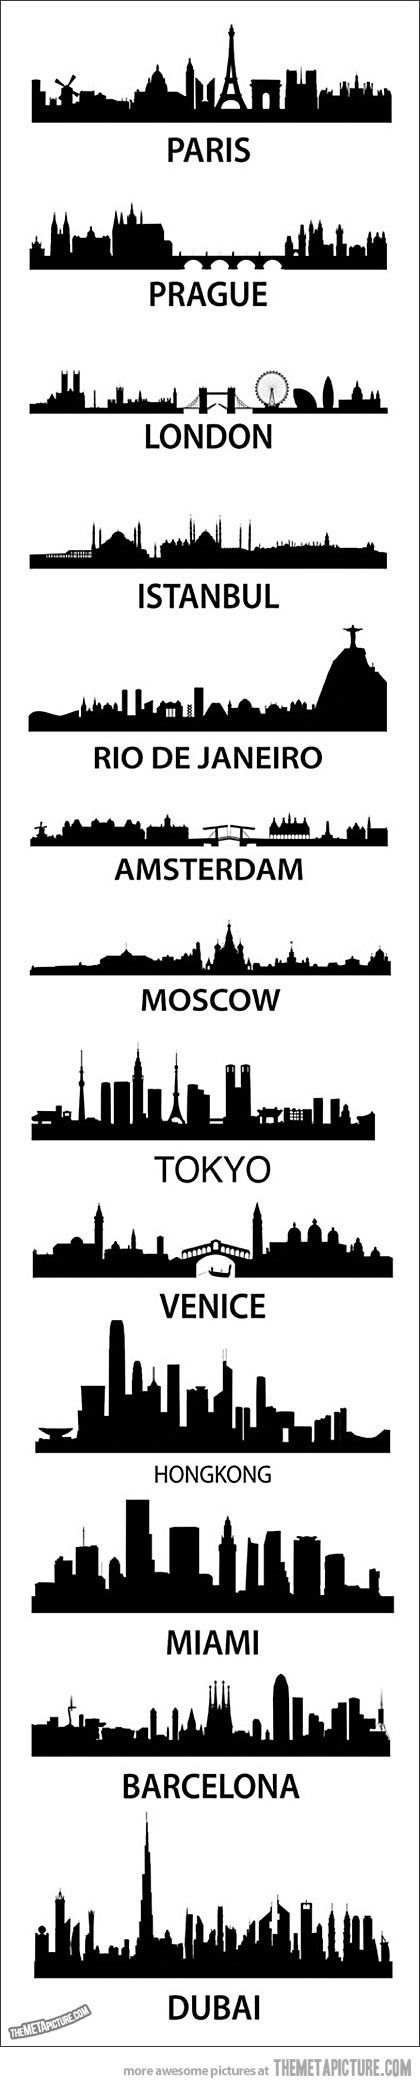 cool-cities-famous-silhouette